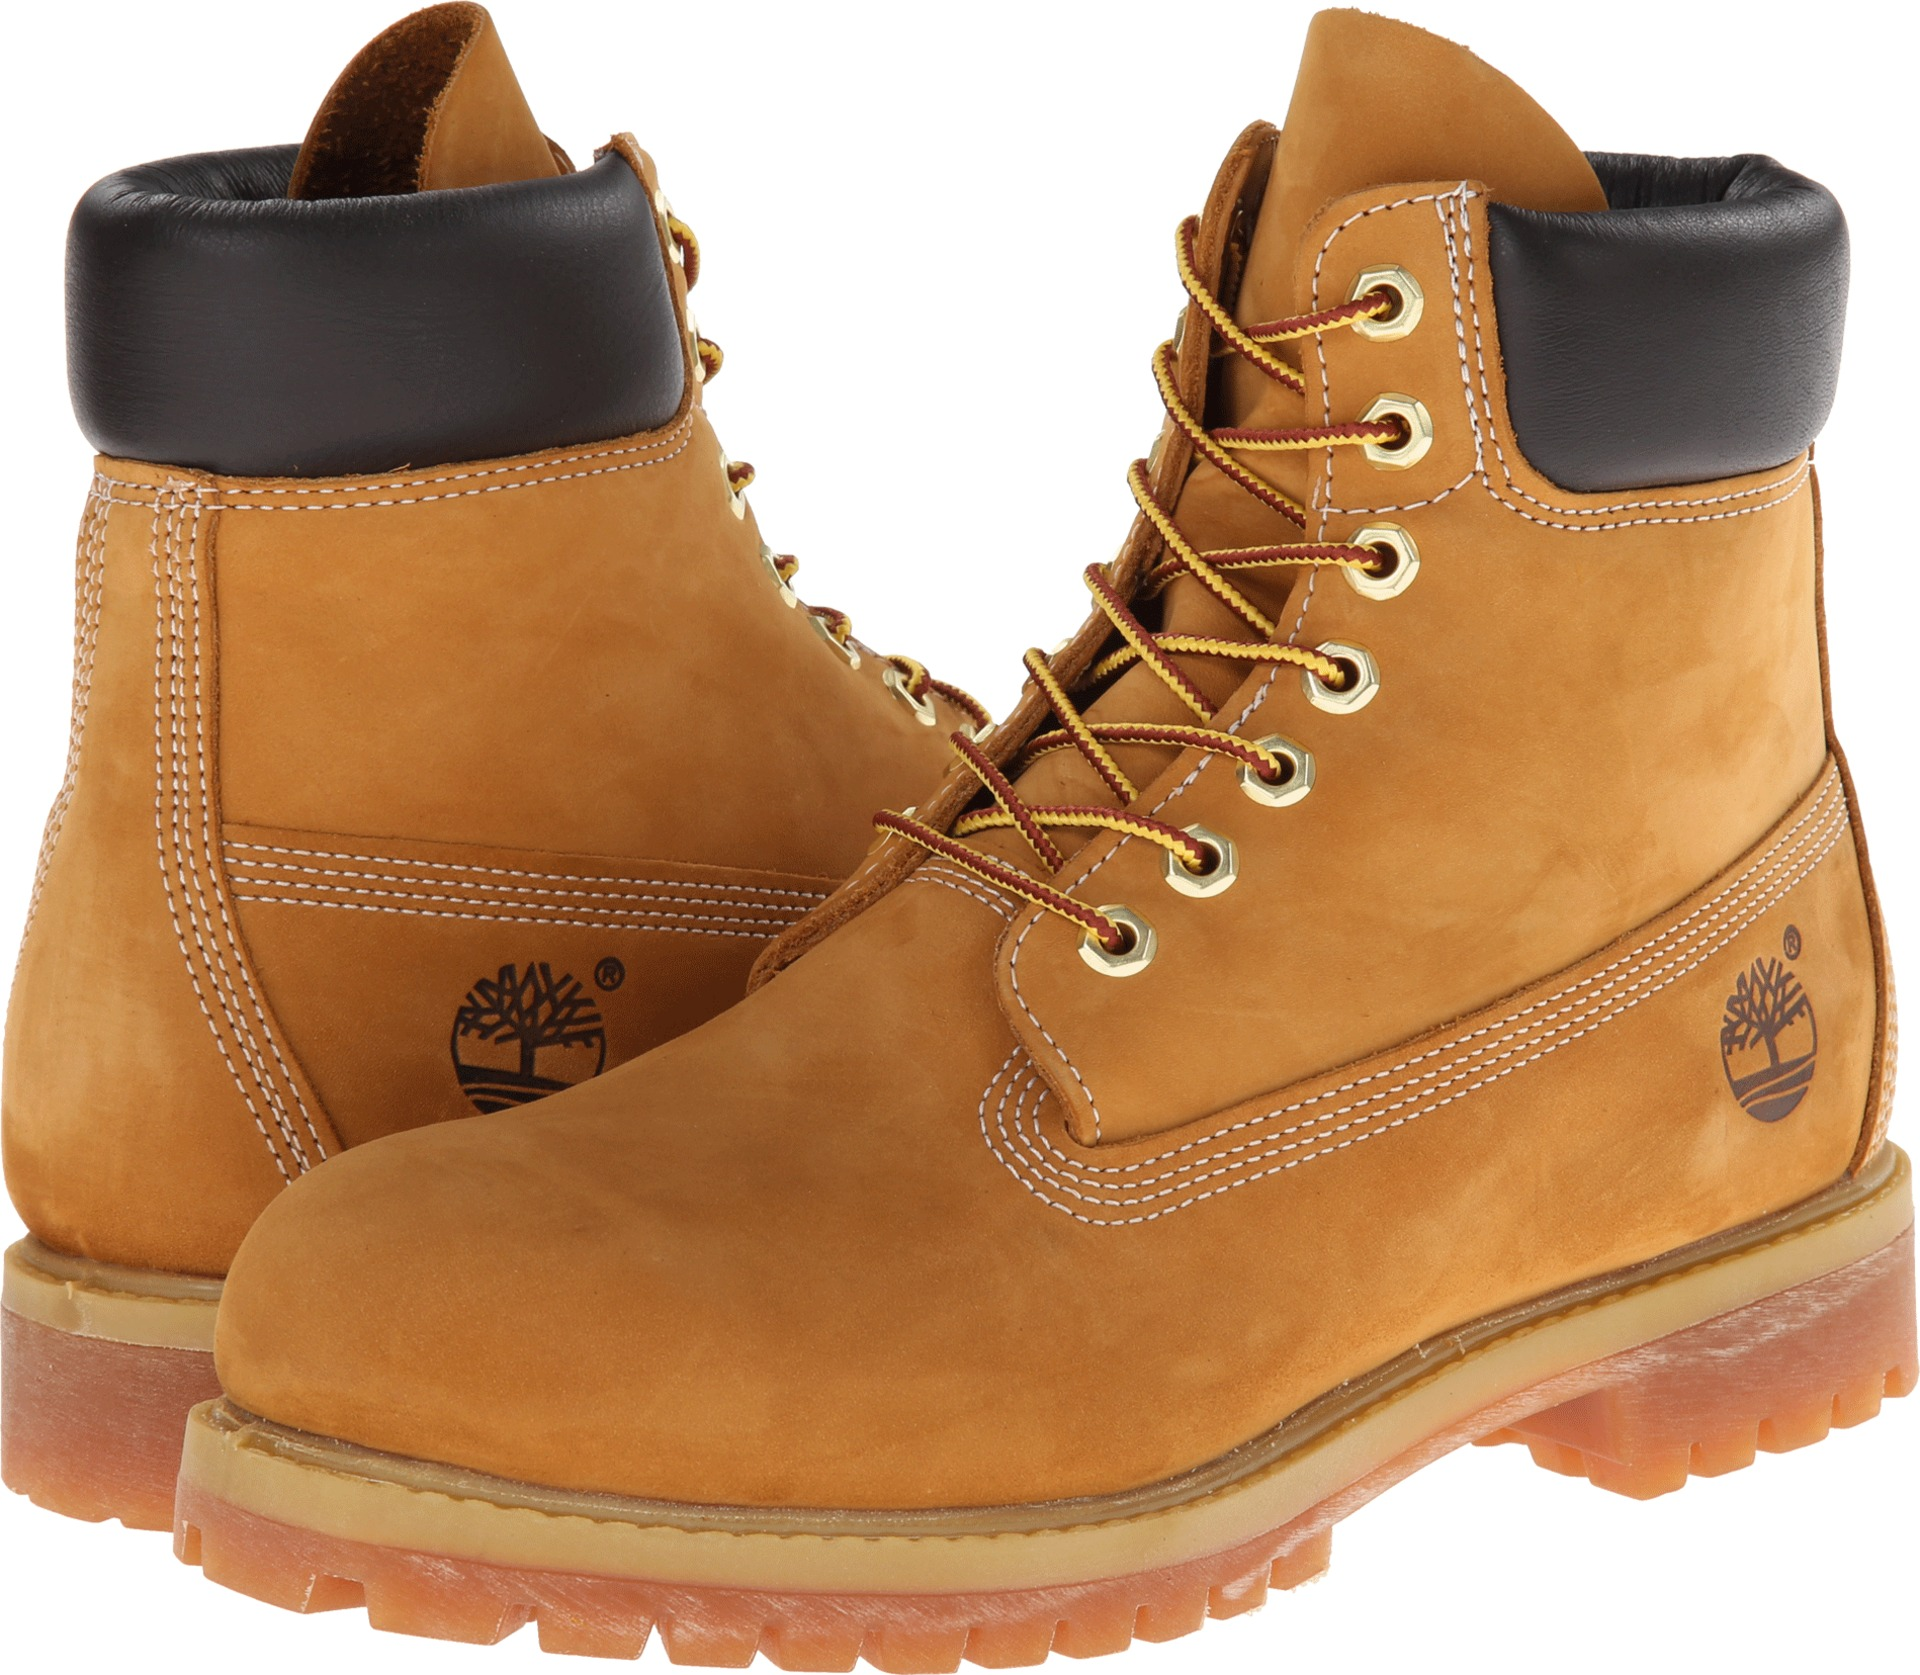 "Timberland classic 6"" premium boot wheat nubuck leather"